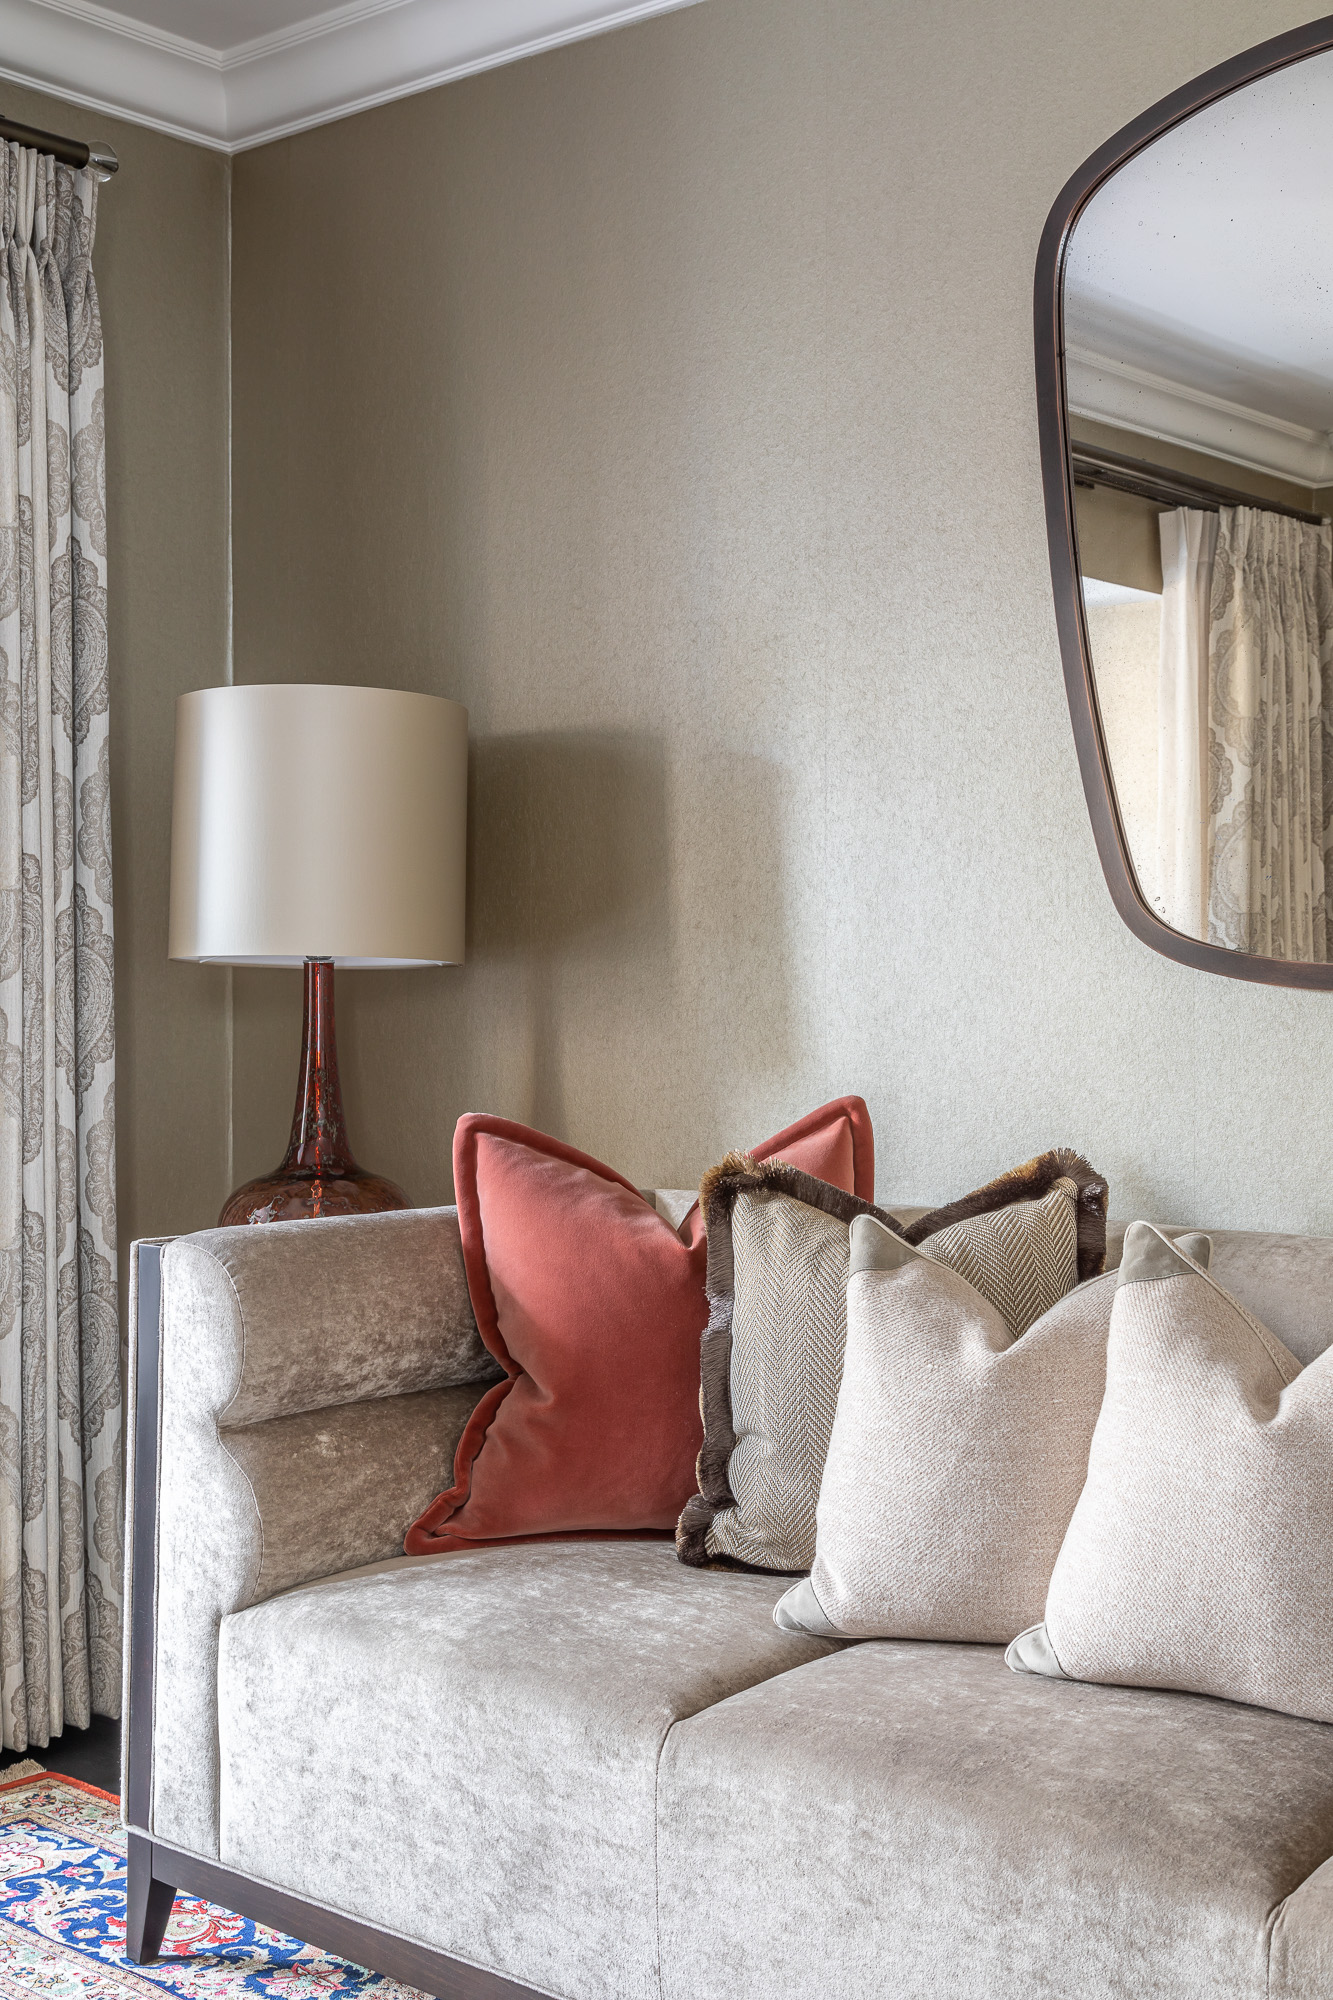 jonathan bond, interior photographer, cushions on settee in living room, esher, surrey